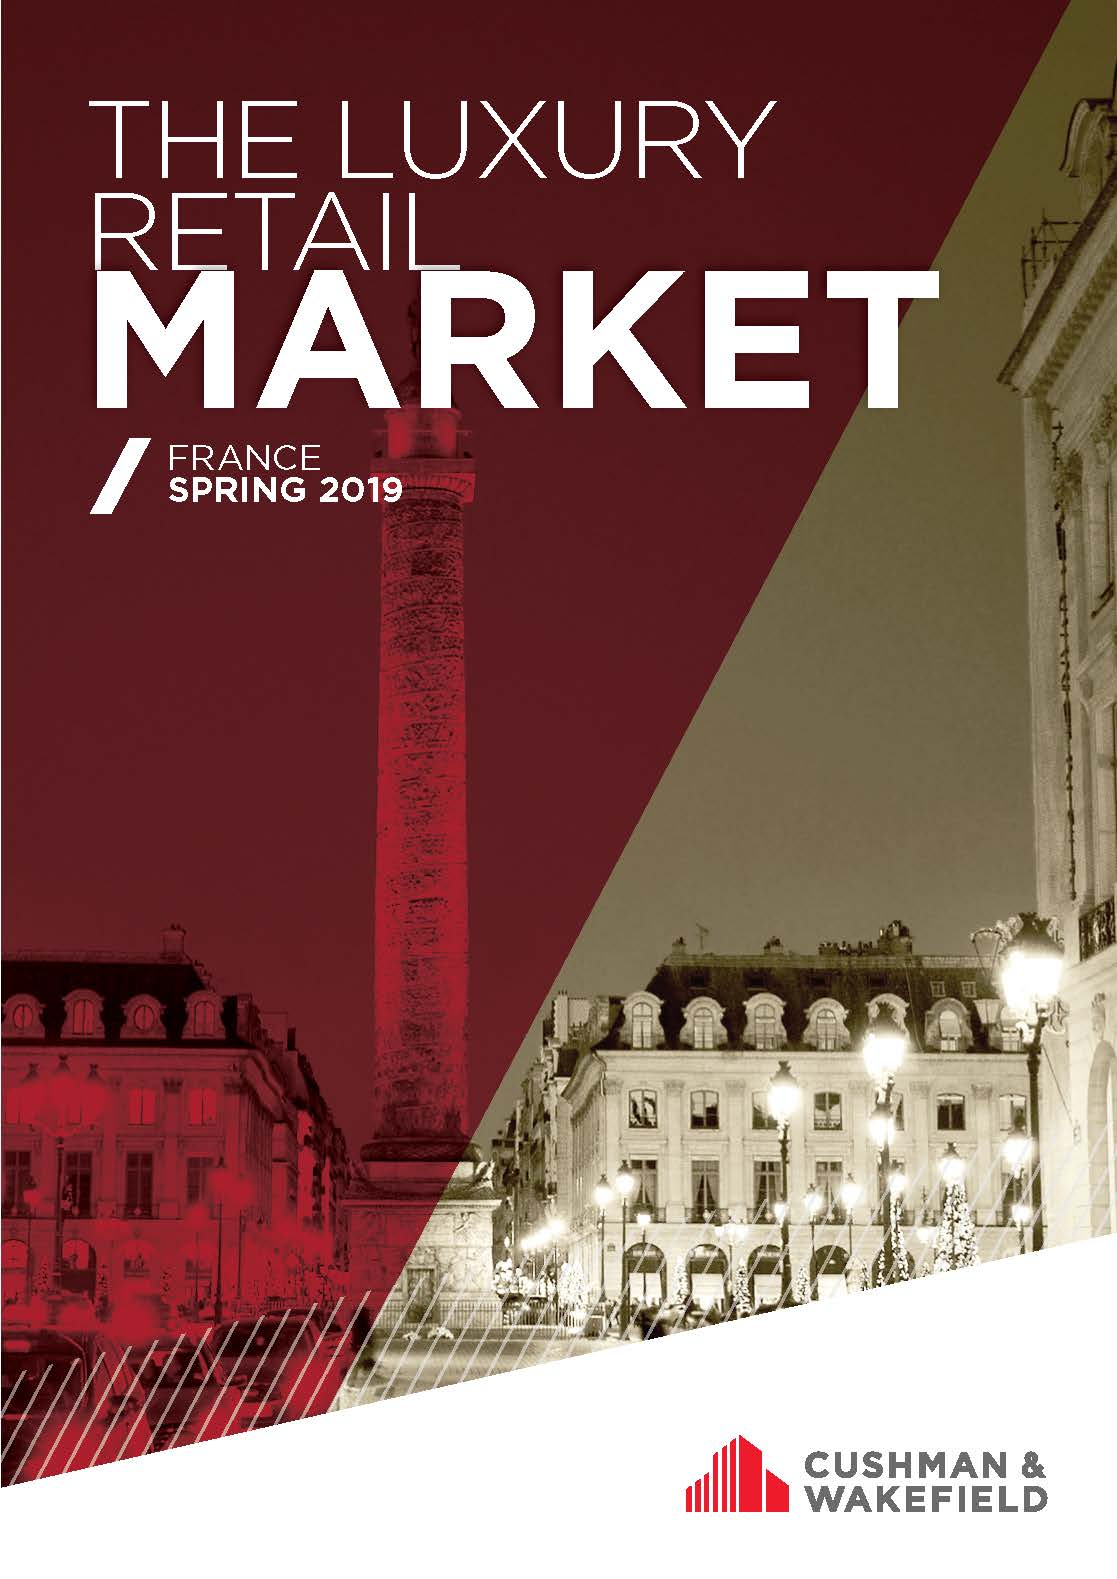 The Luxury Retail Market France cover